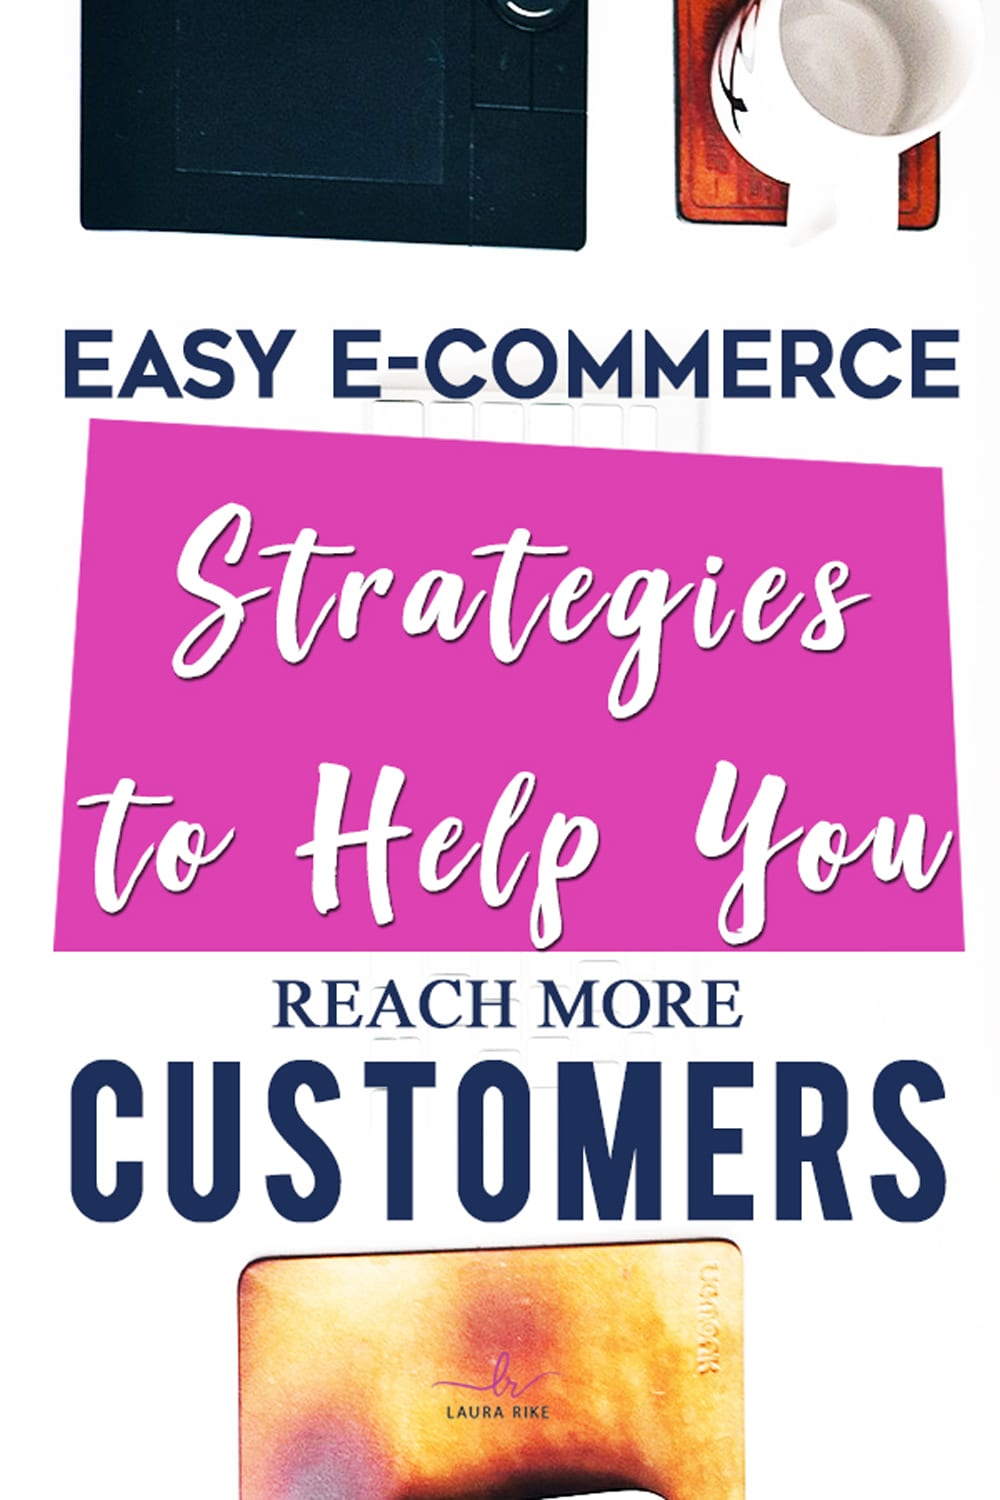 Essential ways to attract customers to your online store who are ready to pay you right now. Right now, you have an amazing product, but your sales just aren't where you want them to be right now. Luckily, attracting new customers to an e-commerce store doesn't actually have to be hard. You don't actually have to reinvent the wheel. If you happen to have specific strategies and tips which we're going to go over today and how to do so.